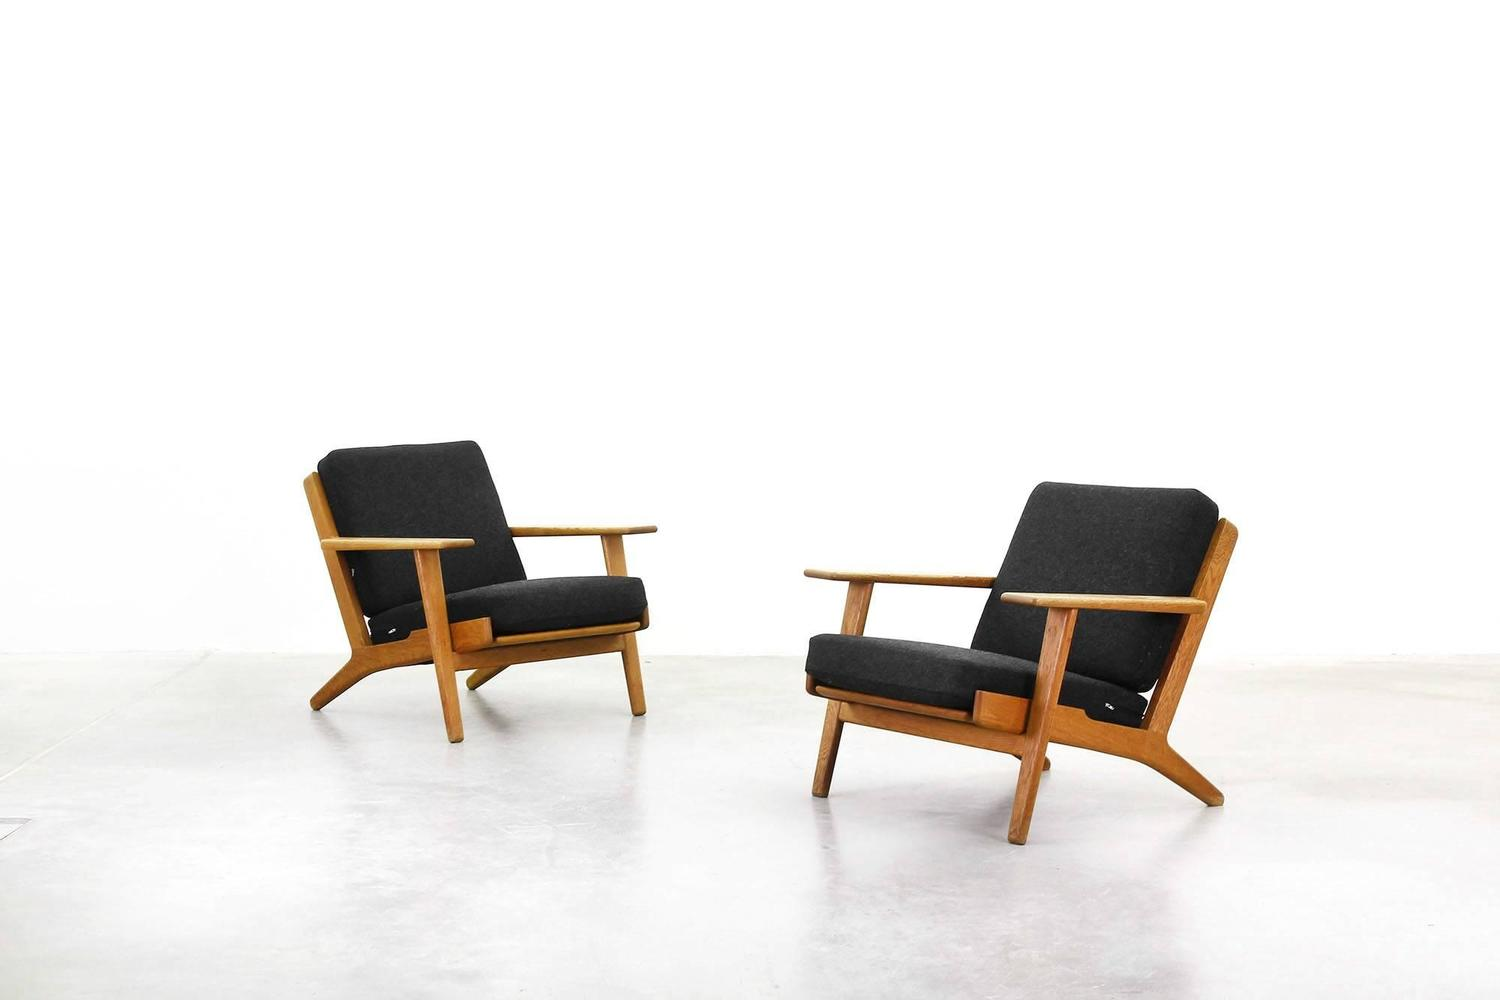 Lounge easy chairs by hans j wegner for getama ge 290 at for Lounge chair kopie